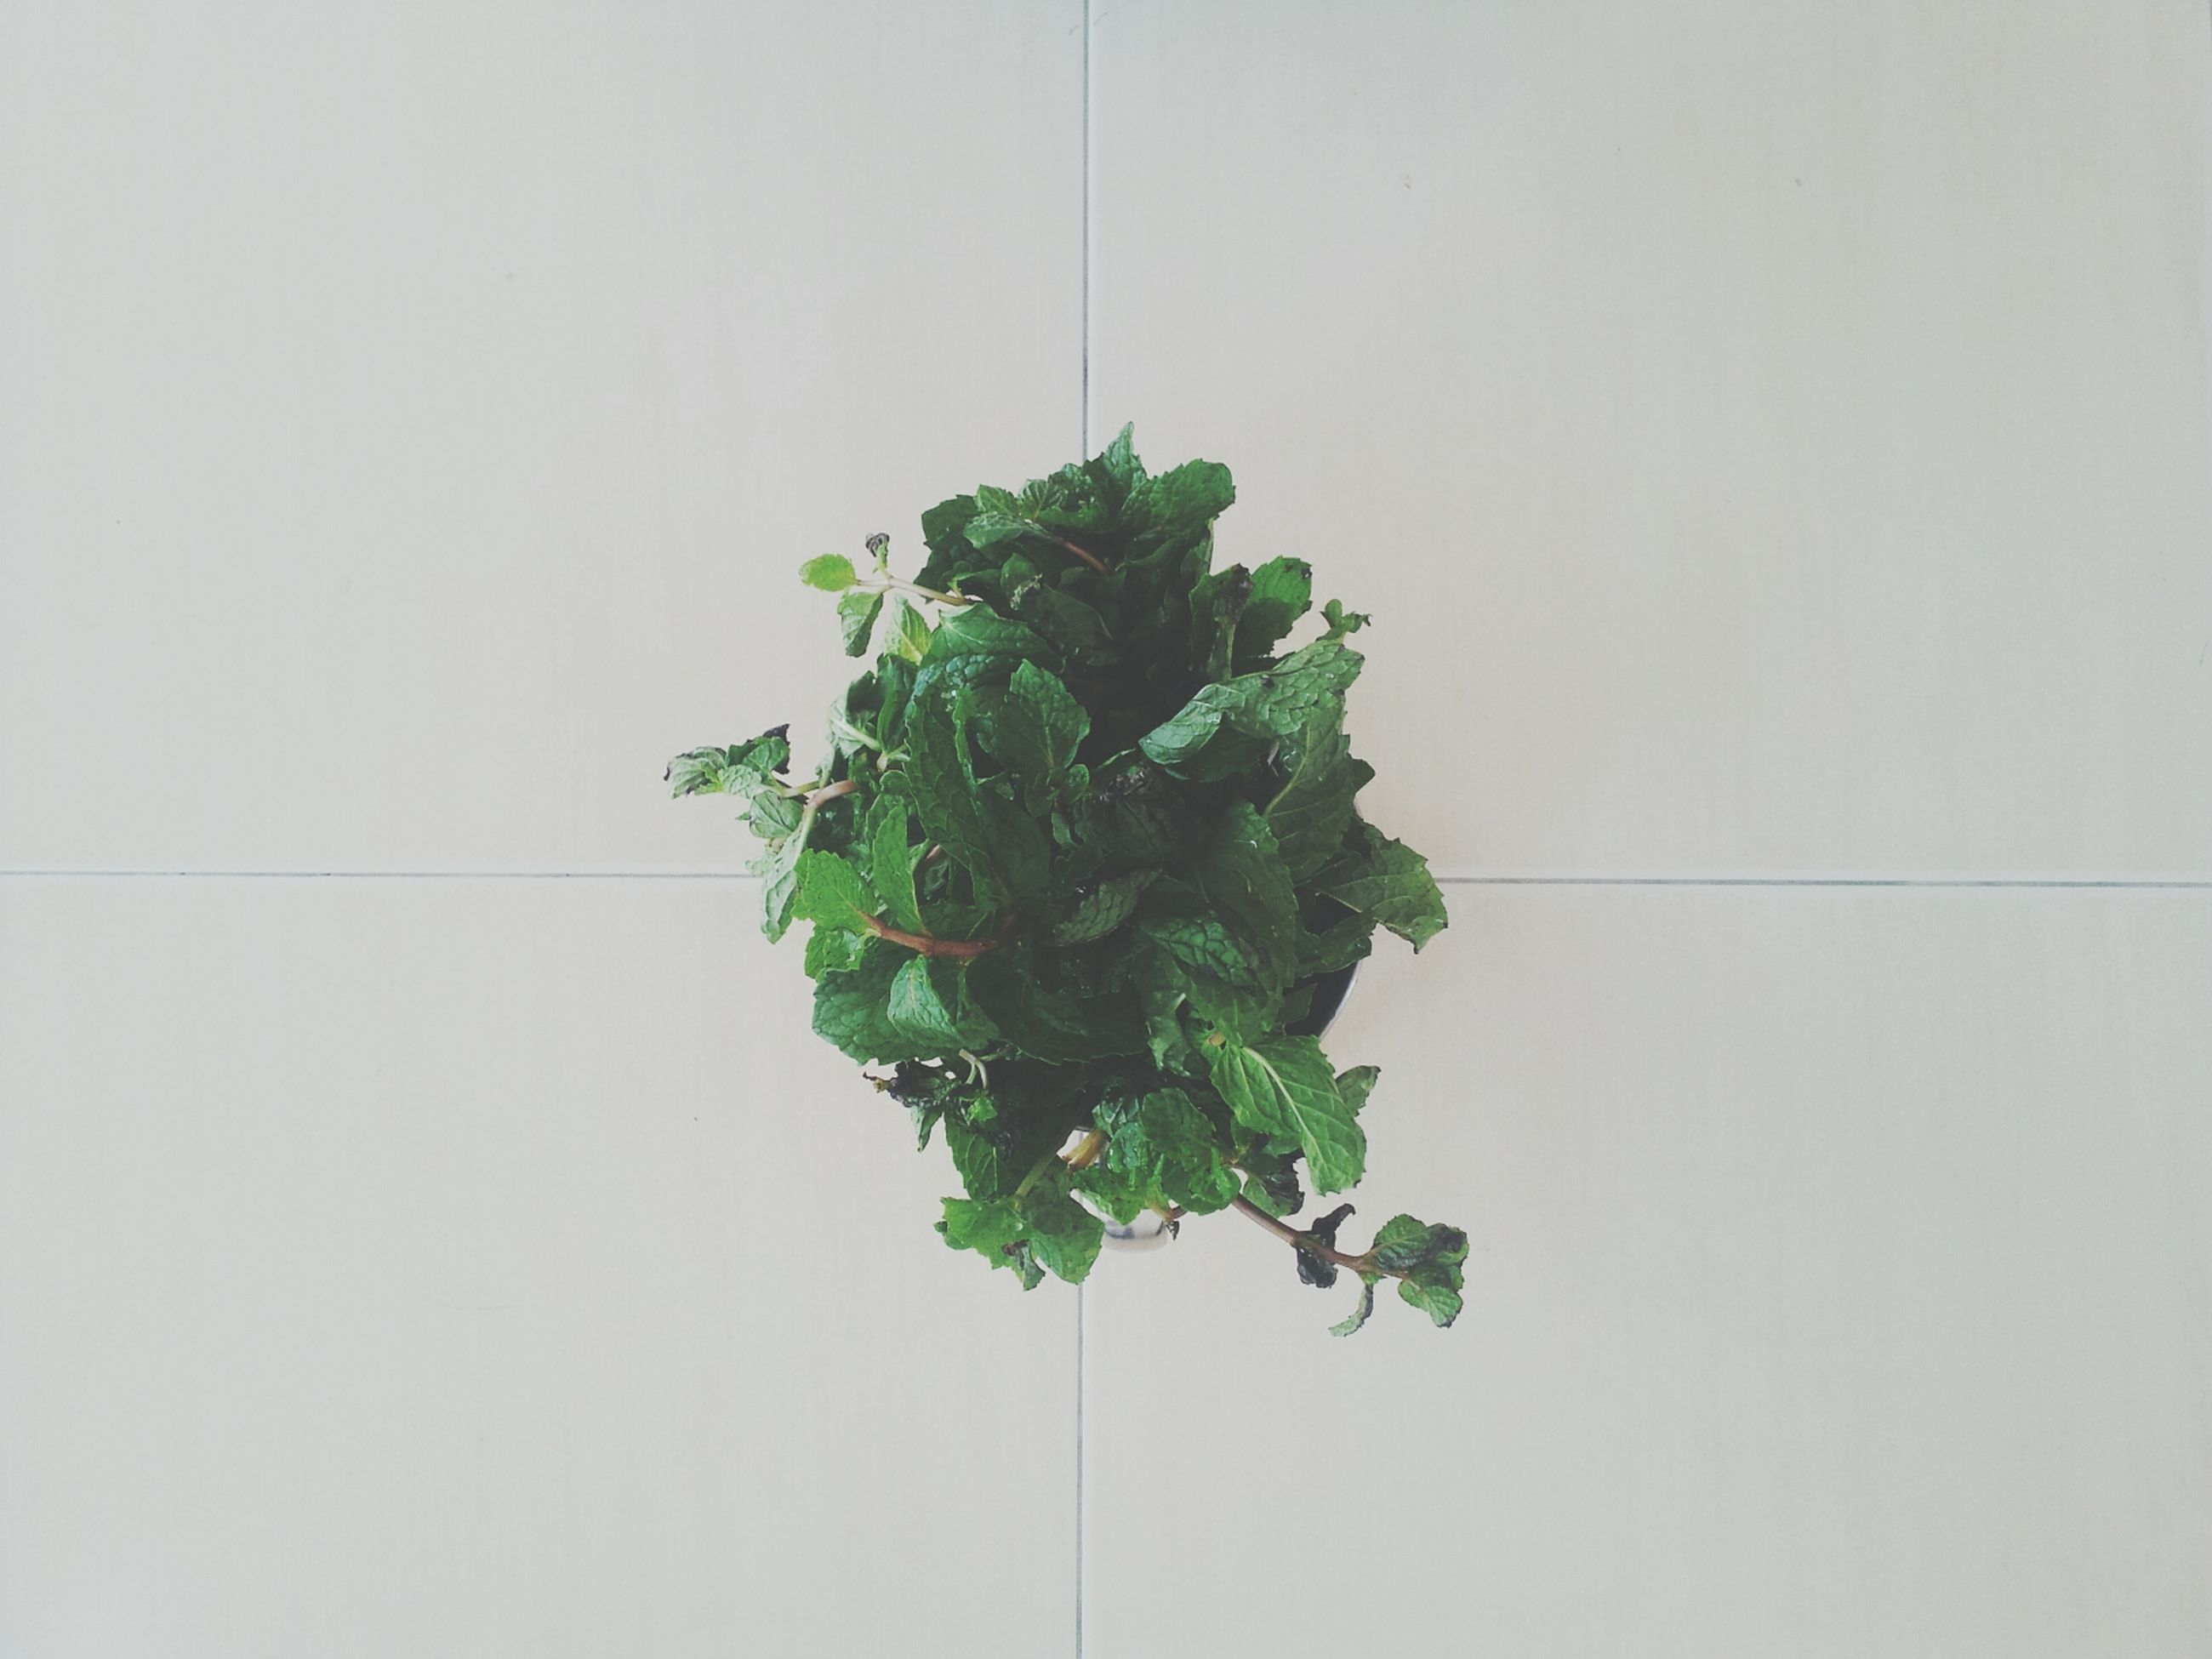 green color, leaf, copy space, growth, plant, wall - building feature, white background, close-up, studio shot, green, stem, nature, wall, freshness, no people, indoors, potted plant, growing, white color, day